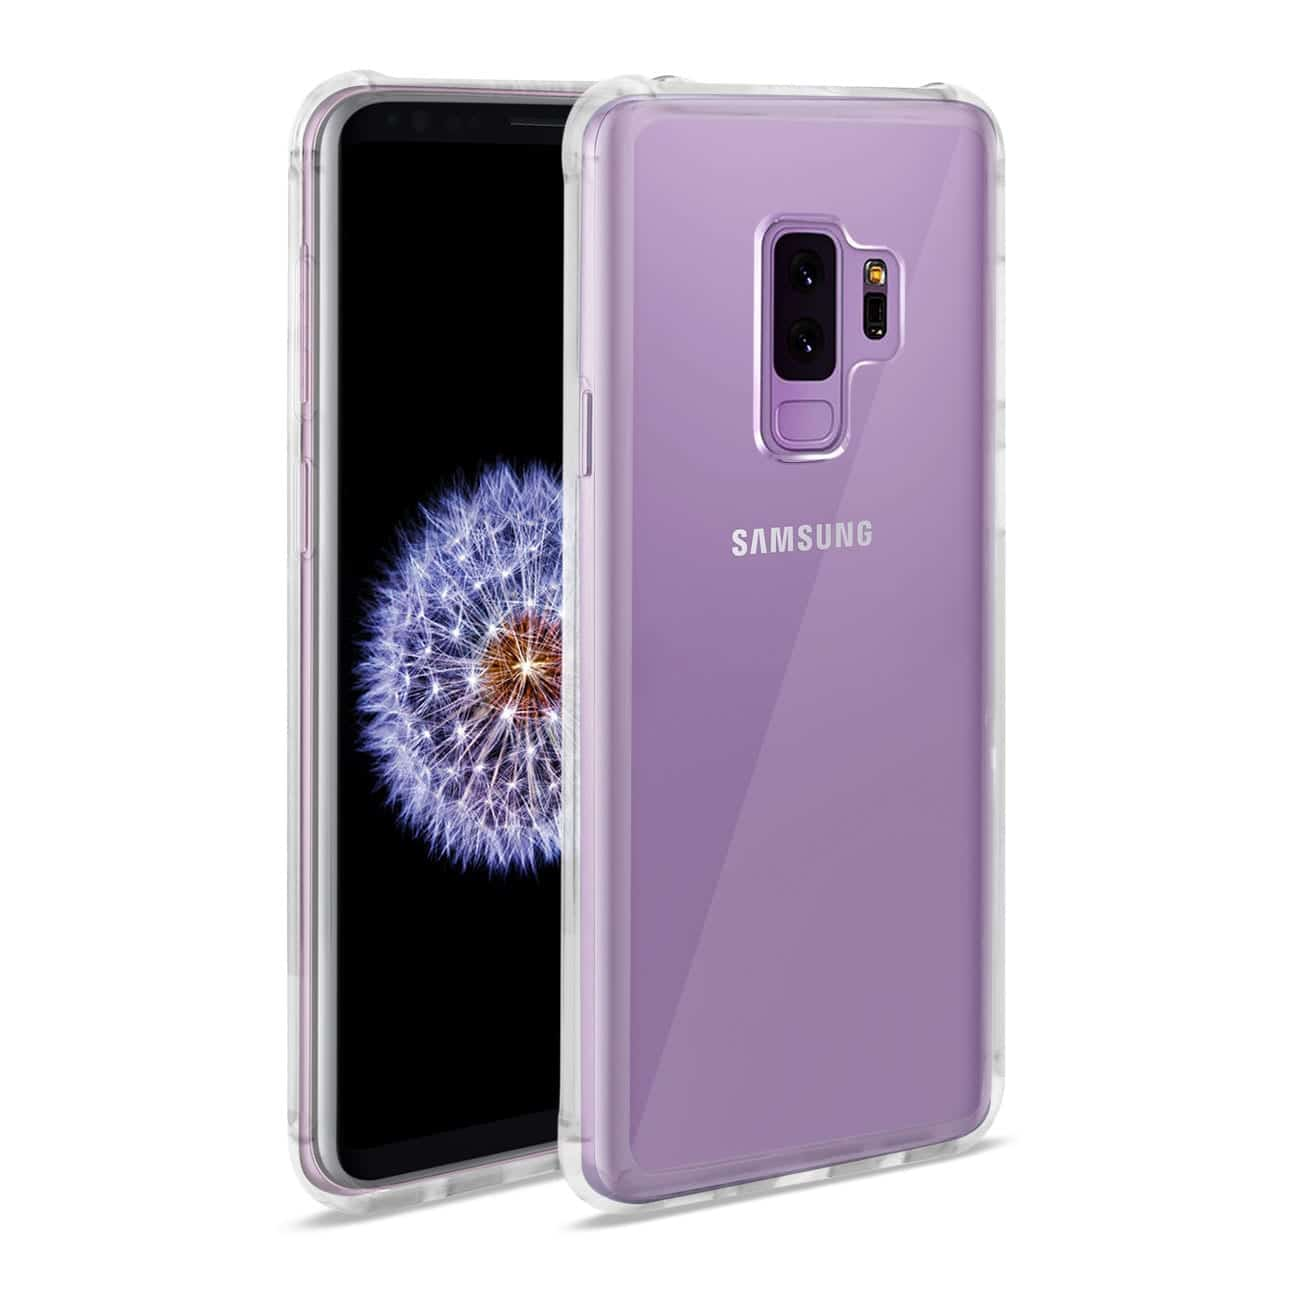 Samsung Galaxy S9 Plus Clear Bumper Case With Air Cushion Protection In Clear